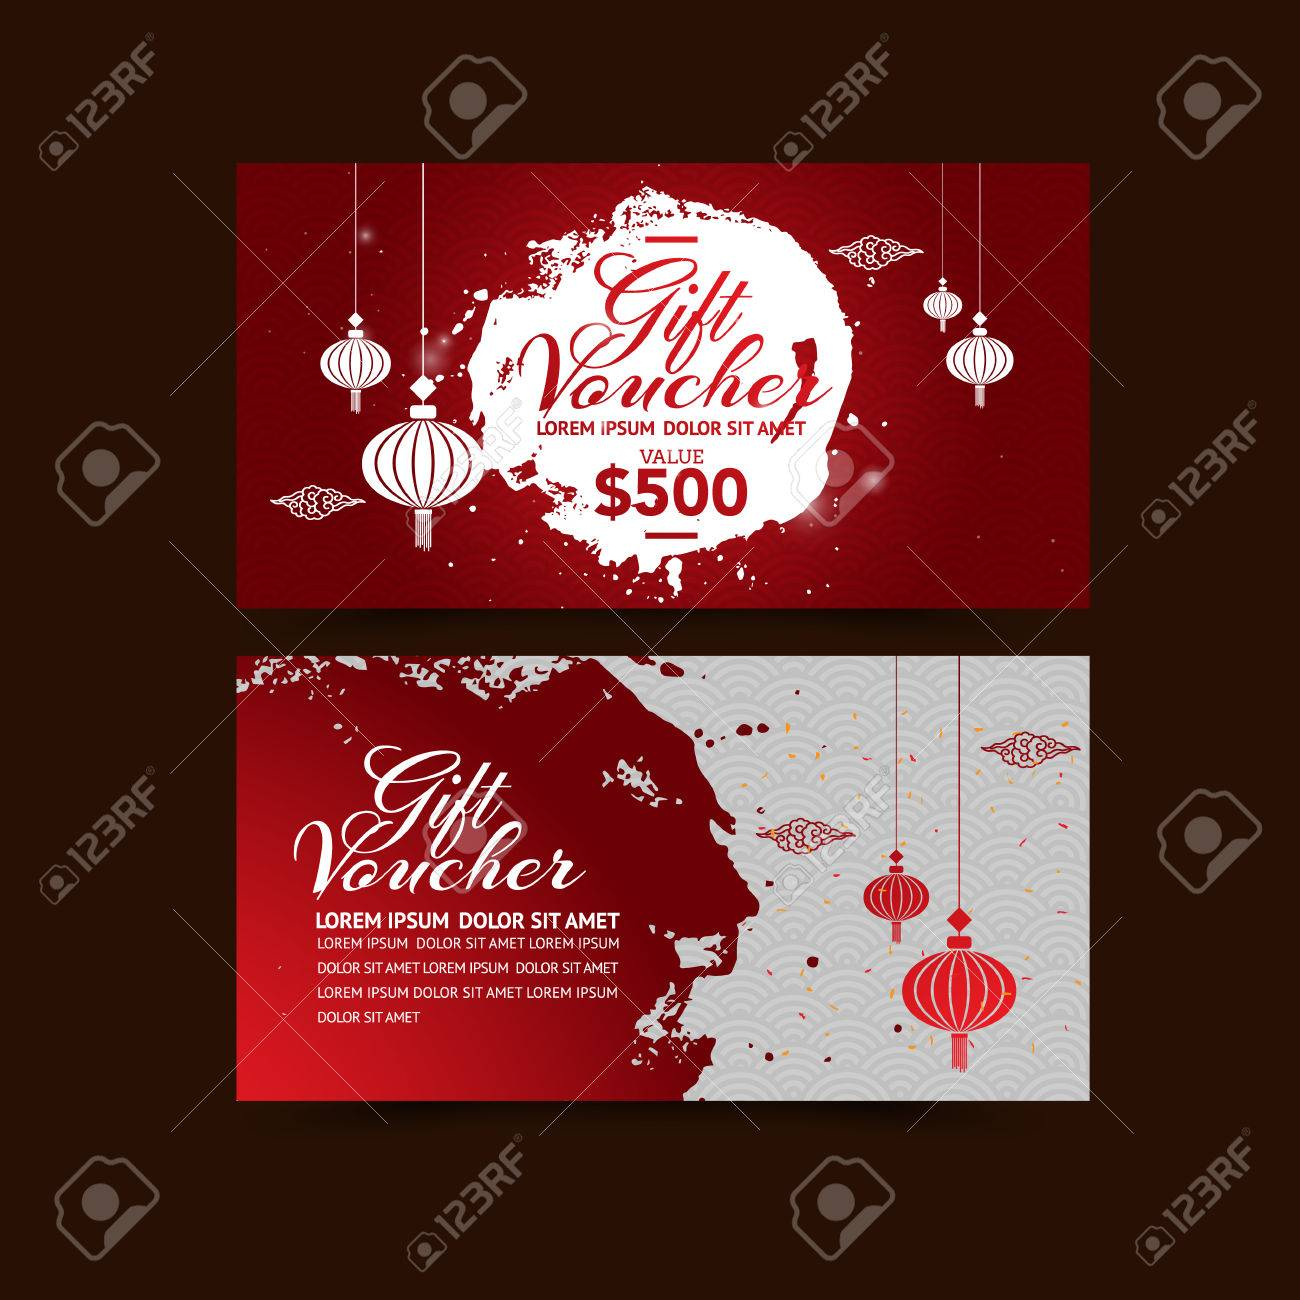 chinese new year gift voucher design template royalty free cliparts